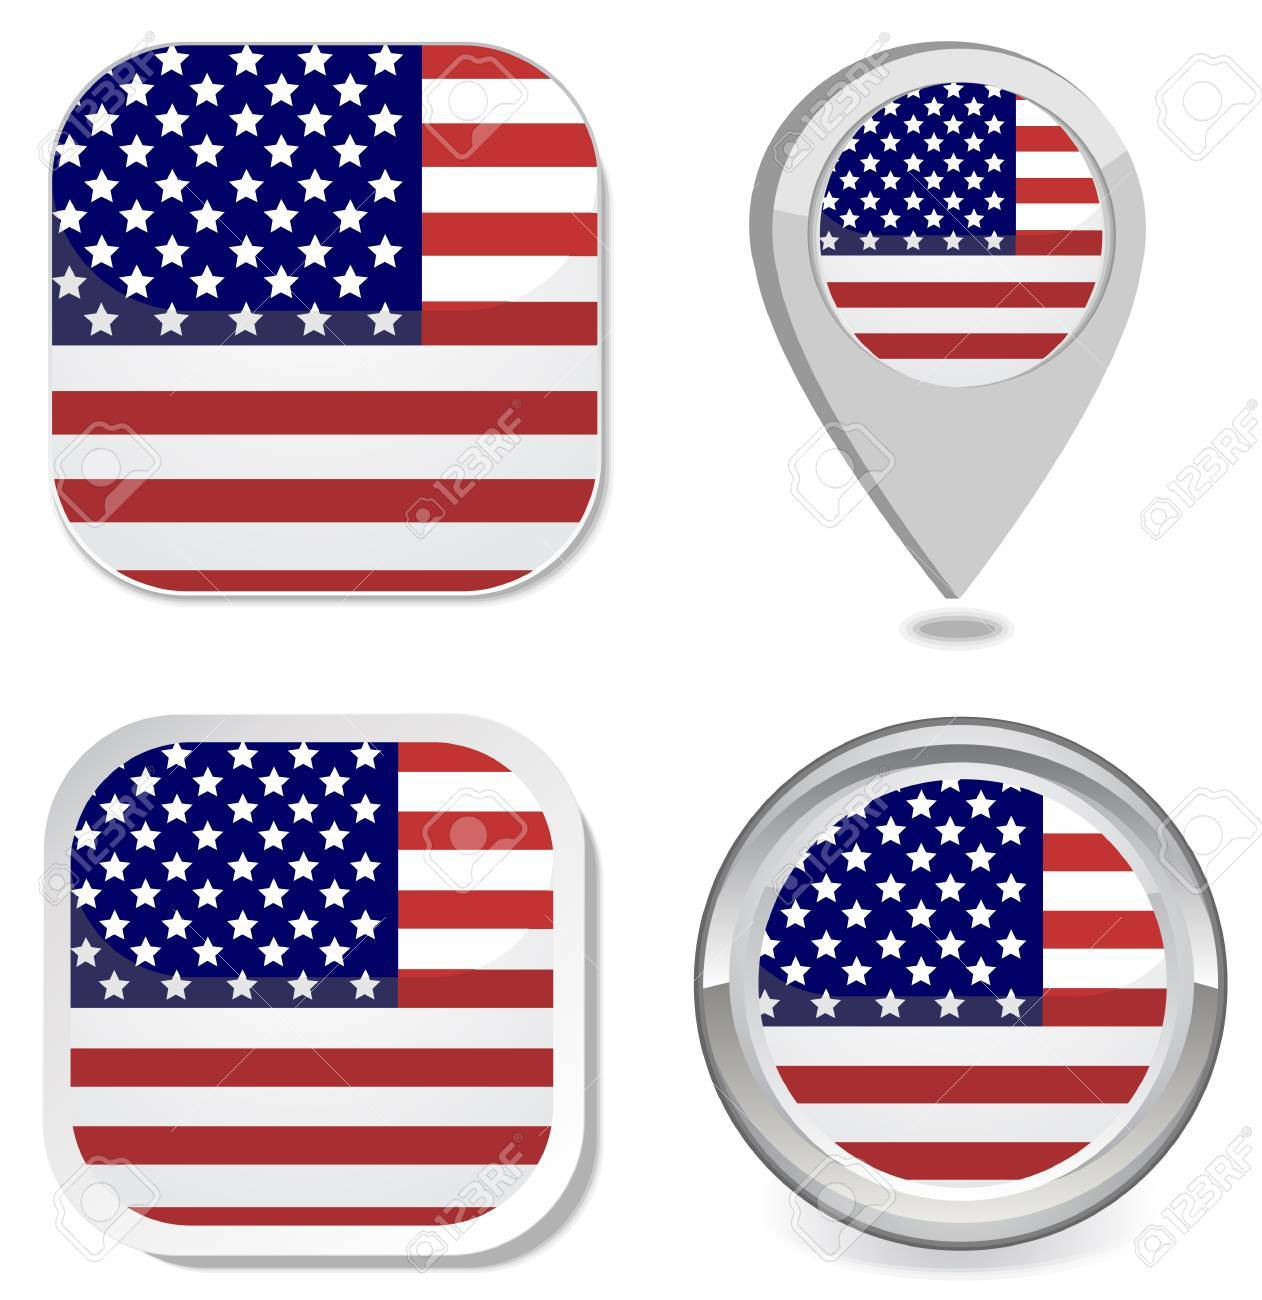 c04a2e32d71 USA Flag Icon Button Sticker Map Point Marker Royalty Free Cliparts ...